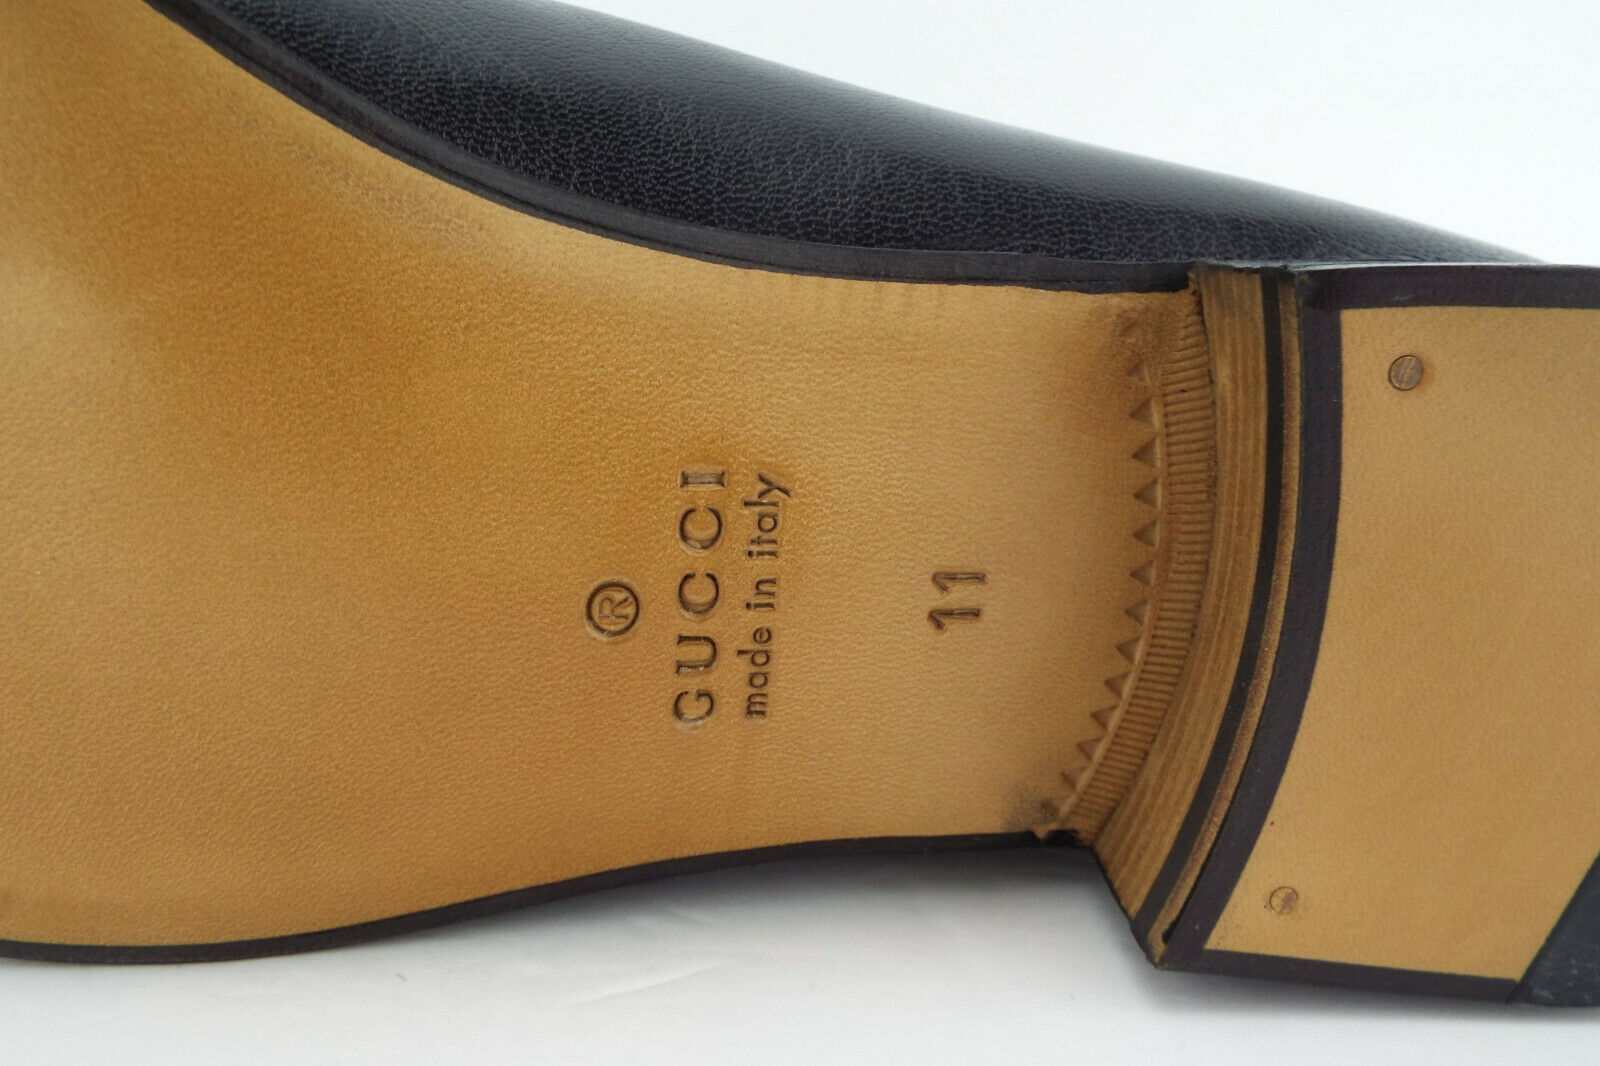 b73a0bfb532 New GUCCI Size 12 Black Leather Horsebit Collapsible Mule Loafers Shoes UK  11